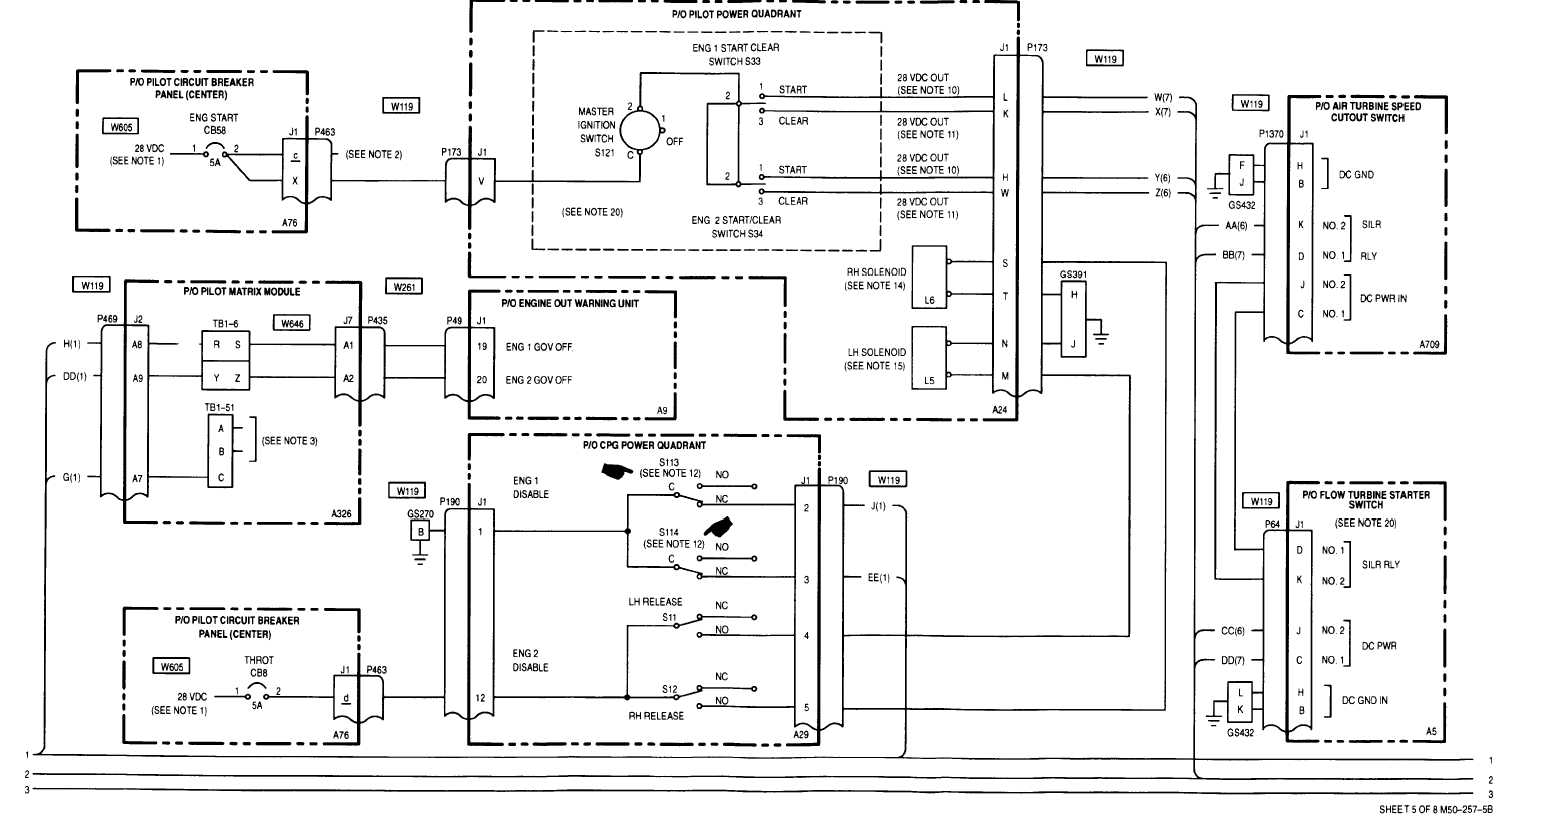 23 1 power plants wiring diagram cont tm 1 1520 238 t 10563 power plants wiring diagram cont tm 1 1520 238 t 10563 swarovskicordoba Gallery